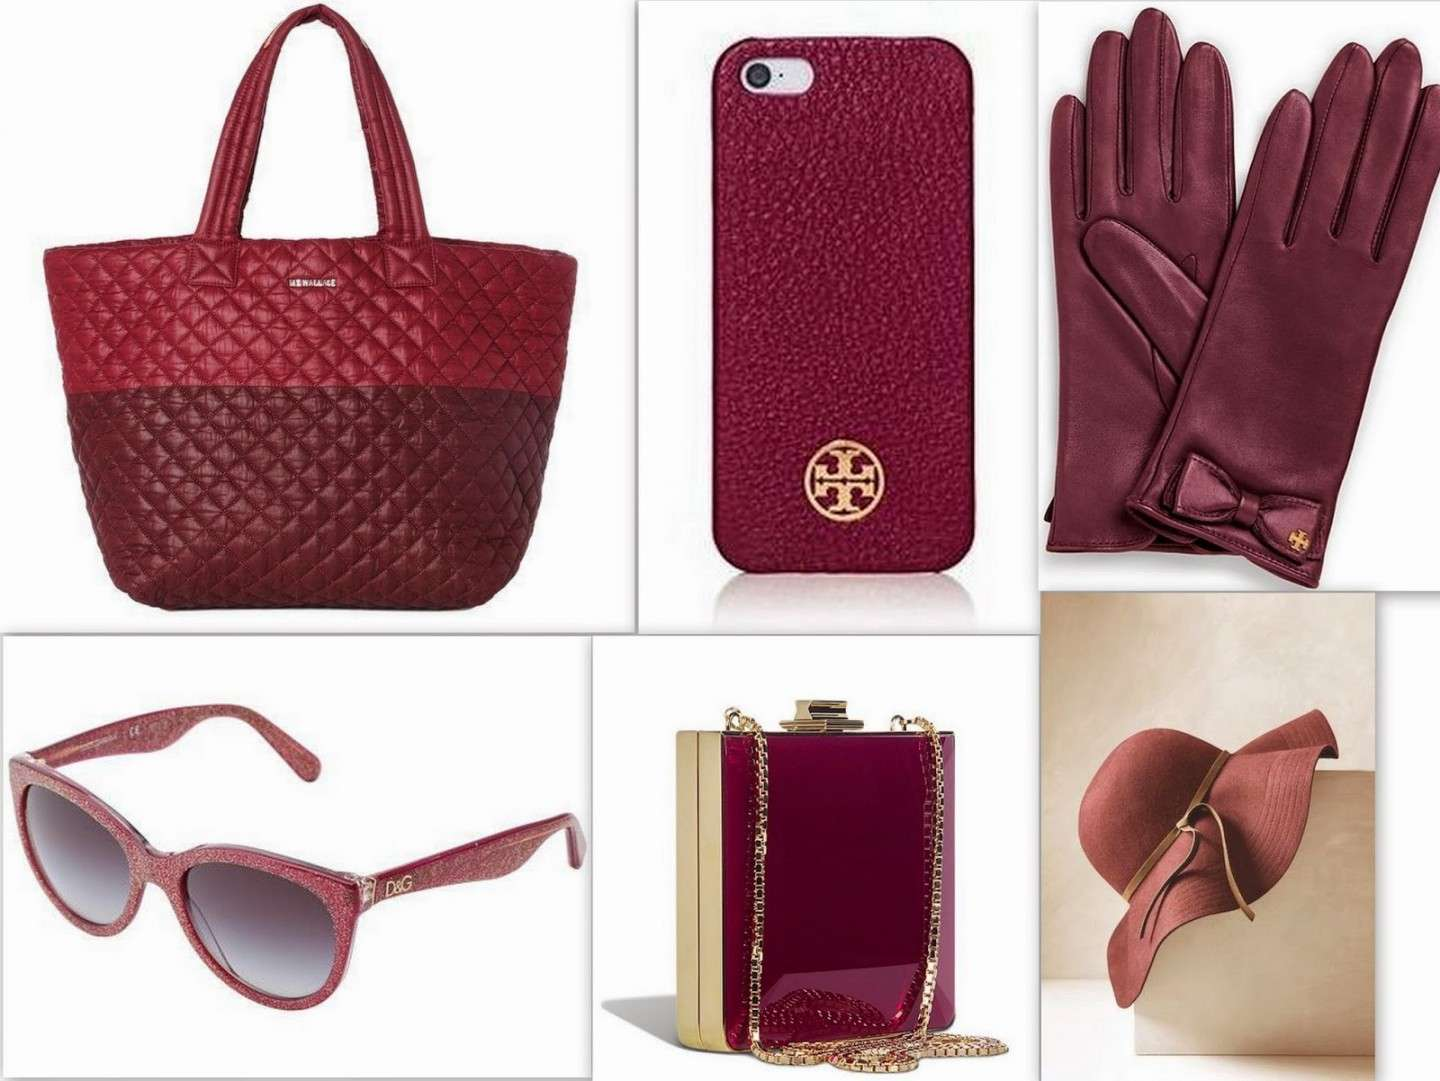 Diversi accessori color Marsala